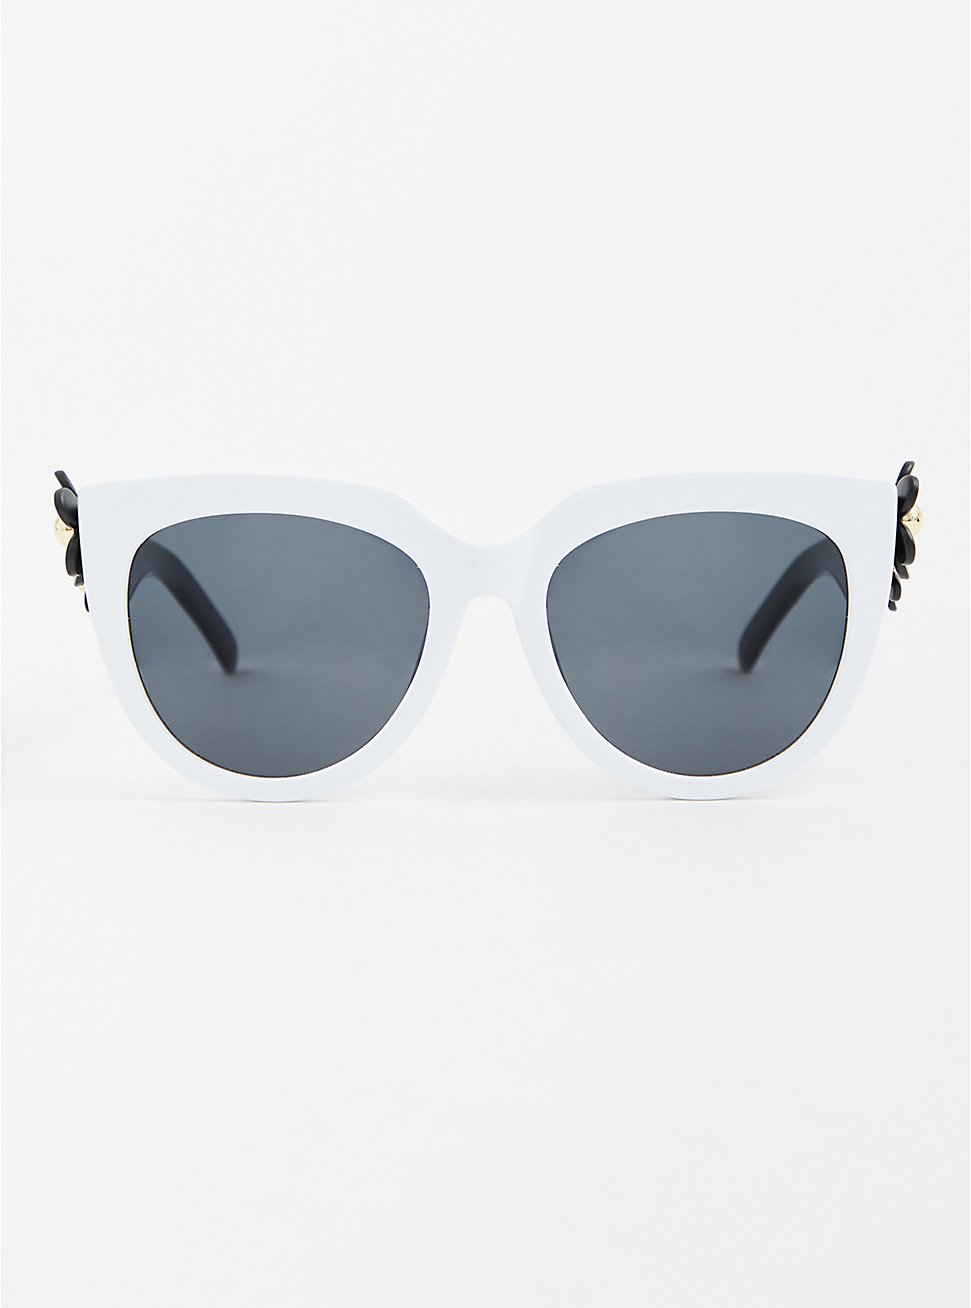 Black and White Floral Temple Sunglasses, , hi-res